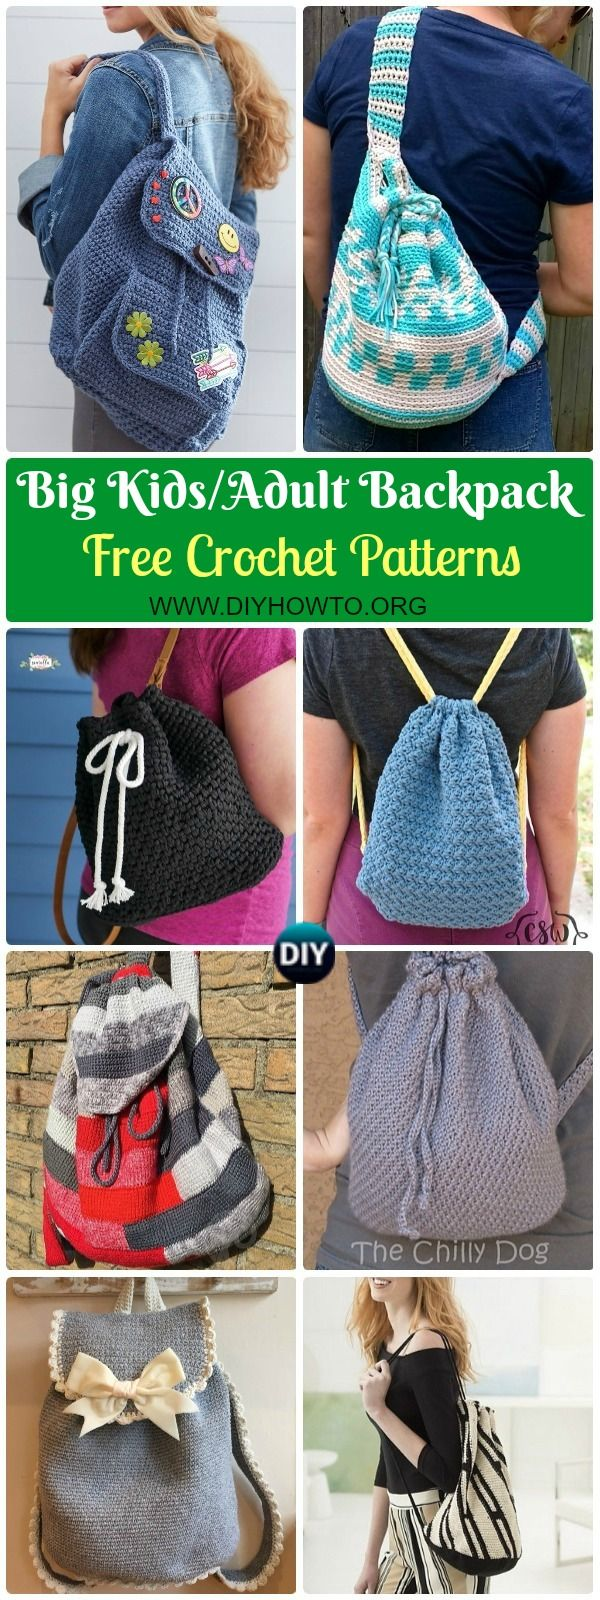 1000 images about crochet thread mini amp micro on pinterest - Collection Of Crochet Backpack Free Patterns For Big Kids Adults Crochet Drawstring Bags Crochet School